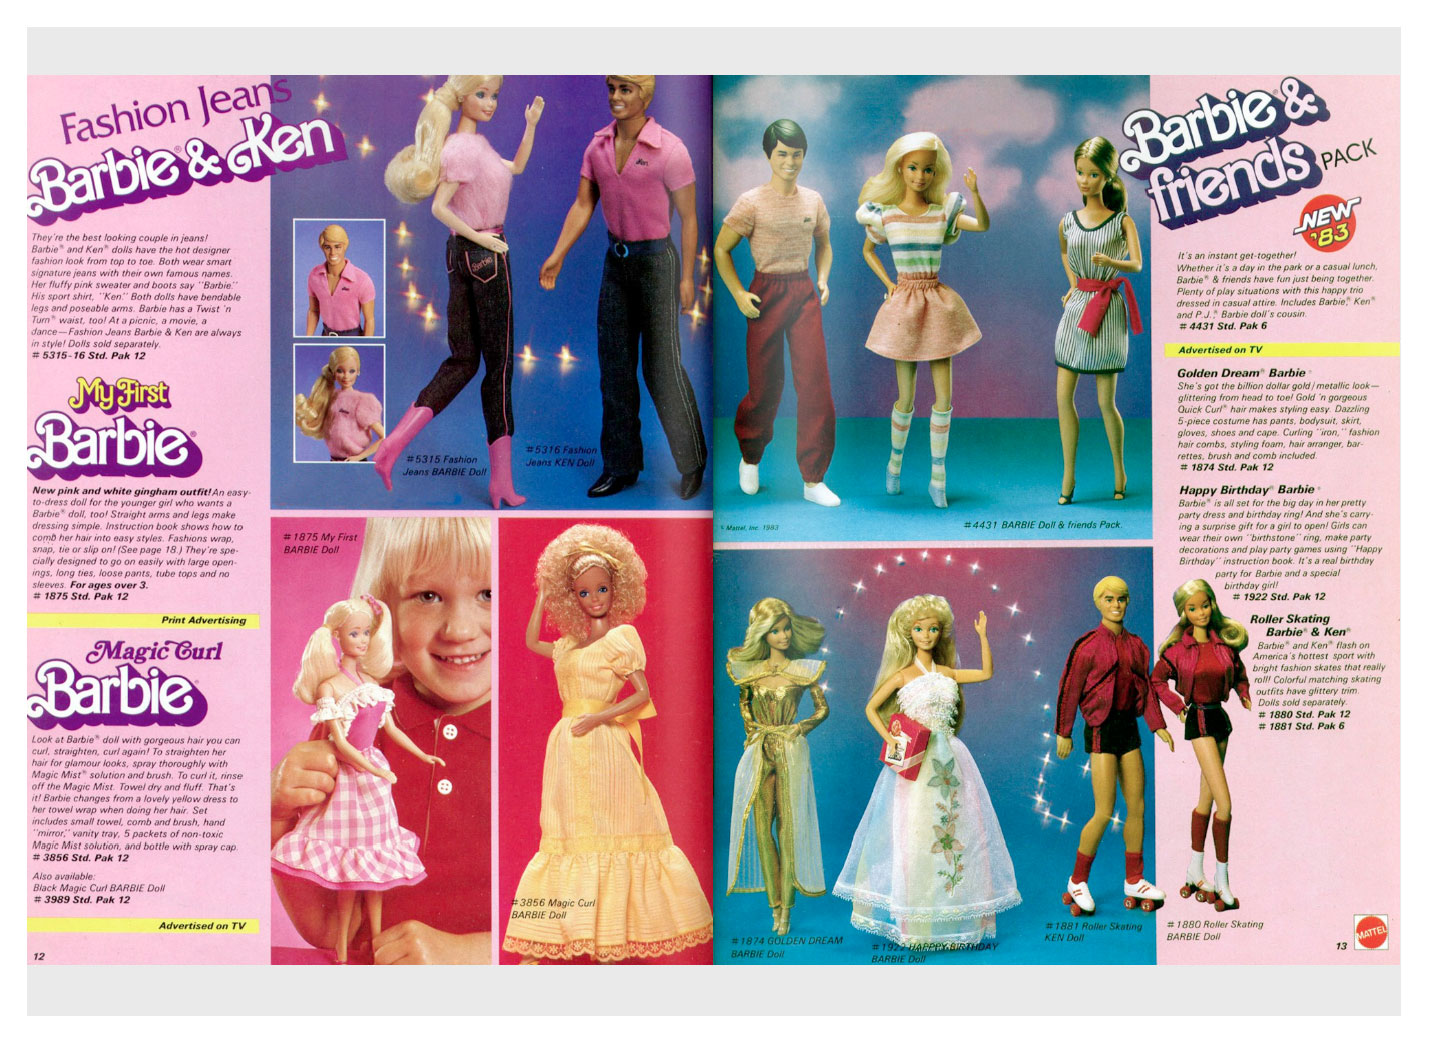 From 1983 Mattel Toys catalogue